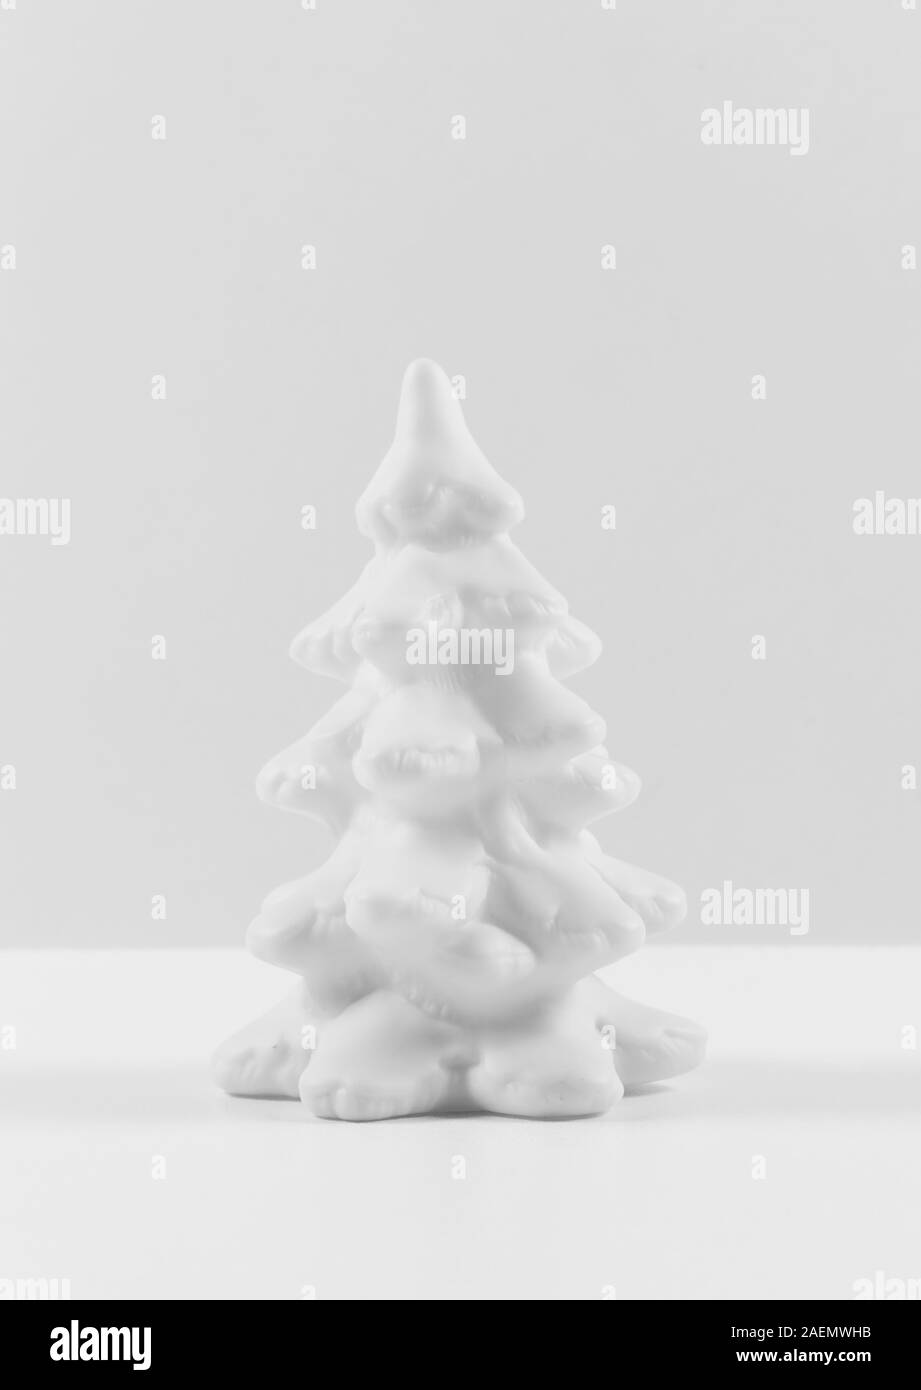 Amazing Monochrome Christmas Tree In Gray Colors Palette New Year Card Minimalism Concept Stock Photo Alamy